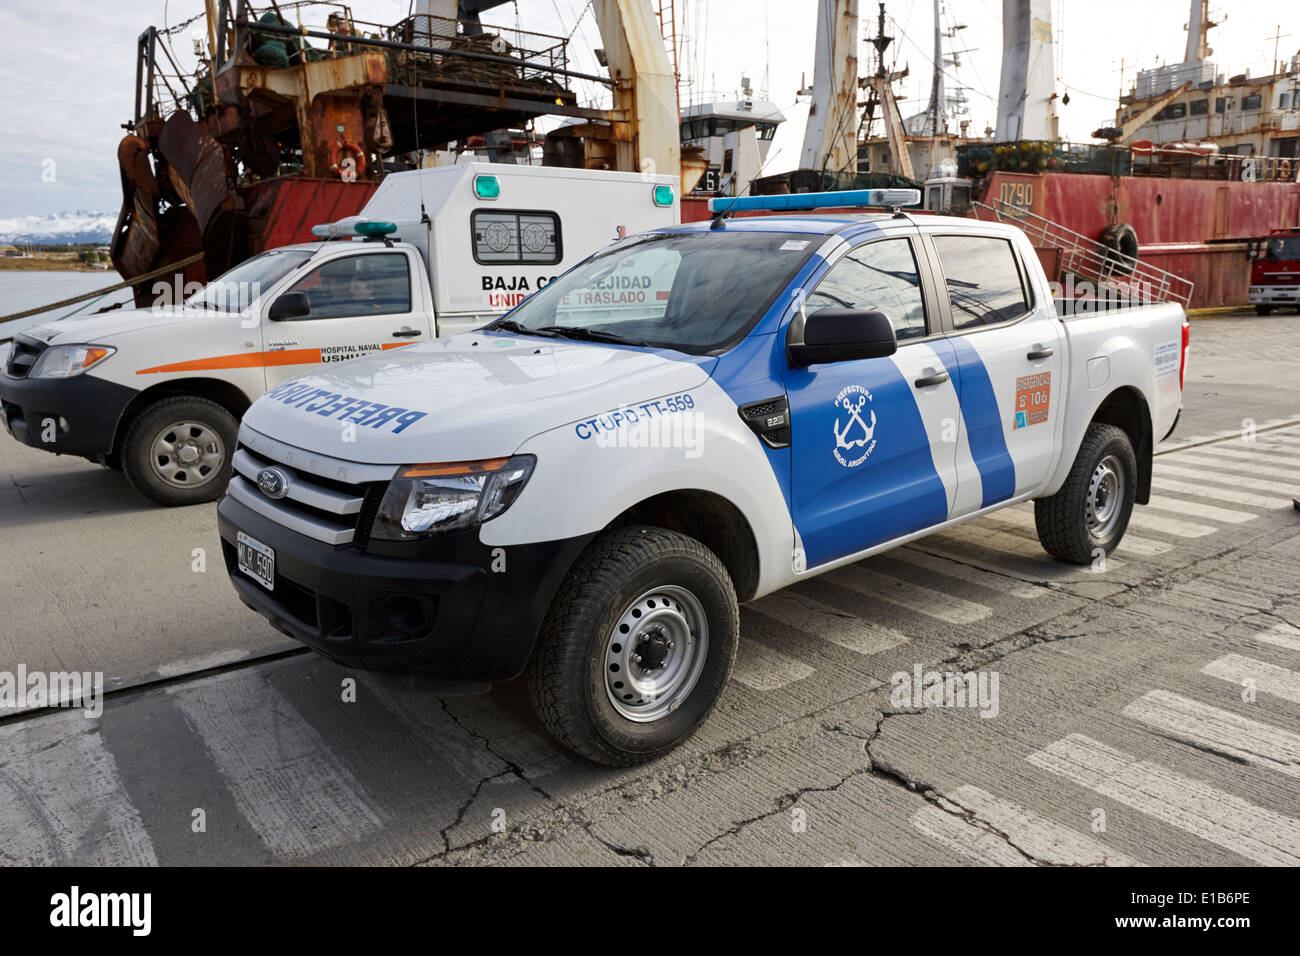 Prefectura naval argentina ford ranger patrol vehicle on pier in ushuaia argentina stock image